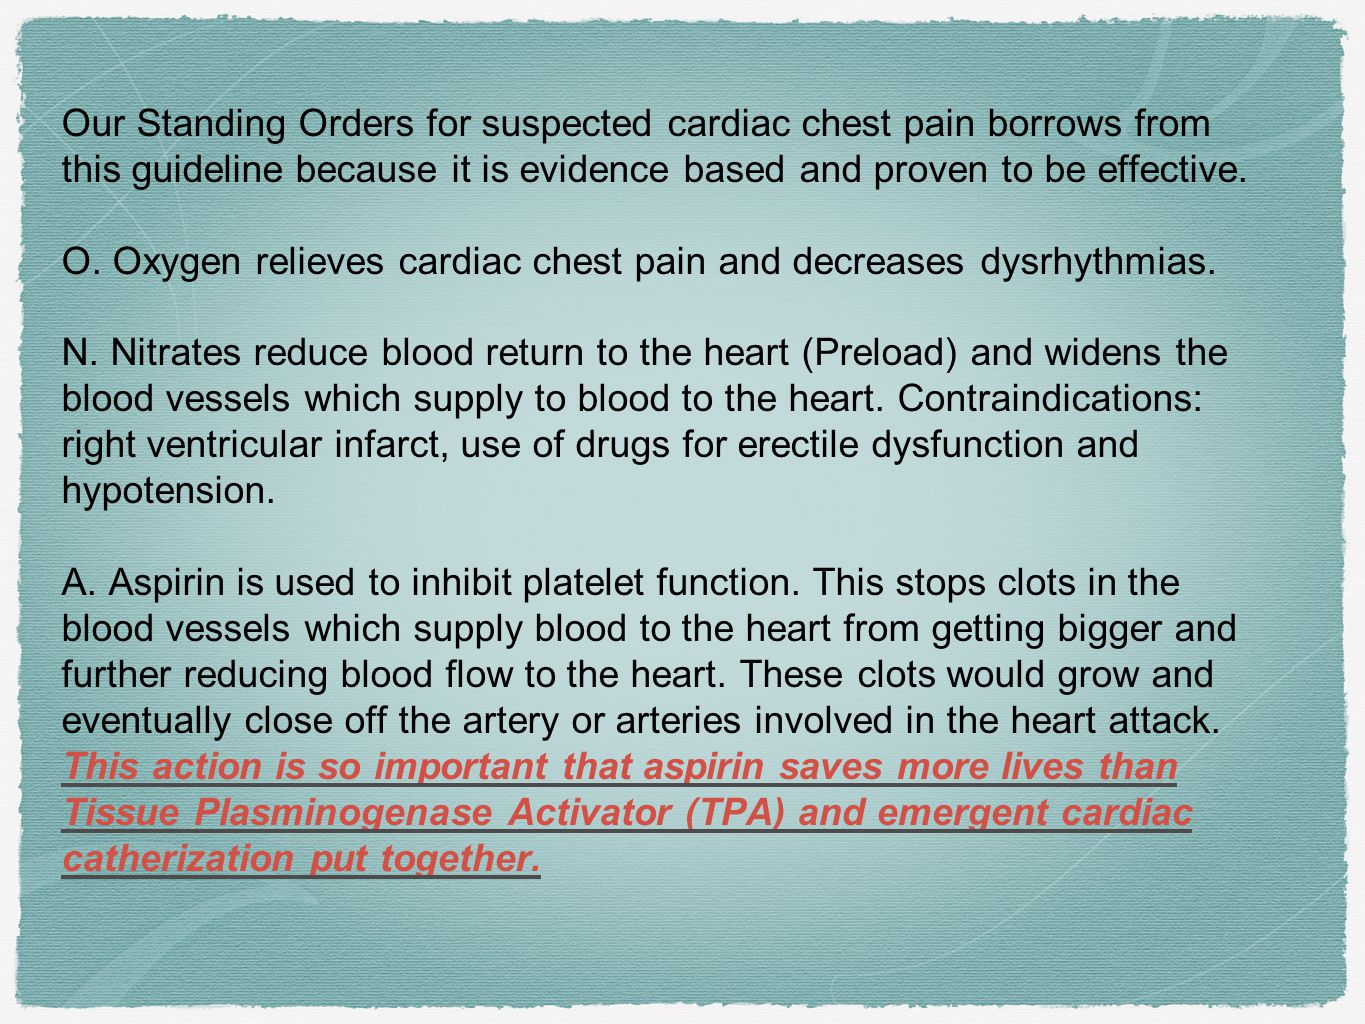 Aspirin Many large clinical studies show that most people with cardiac chest pain have blood clots in the arteries which supply blood to the heart.